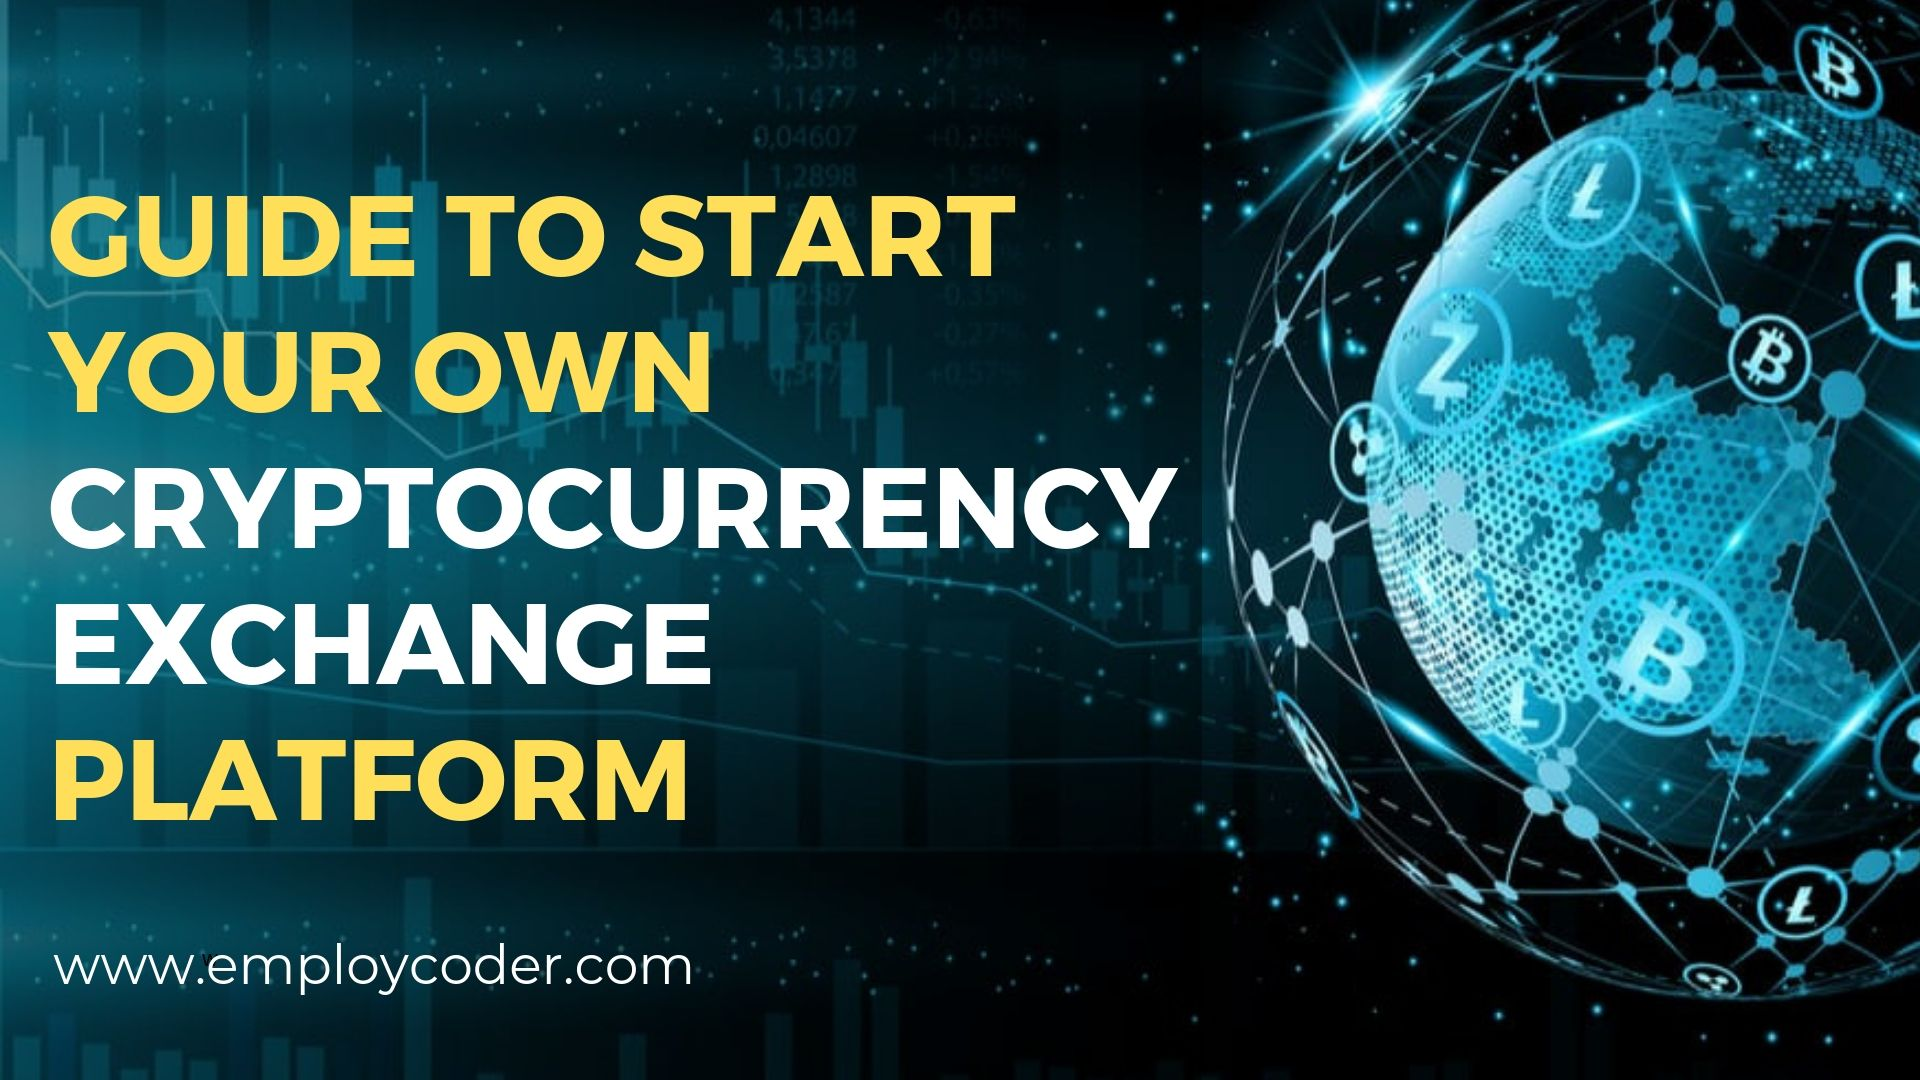 How to start a Cryptocurrrency Exchange Platform? A Complete Guide for Bitcoin Startups